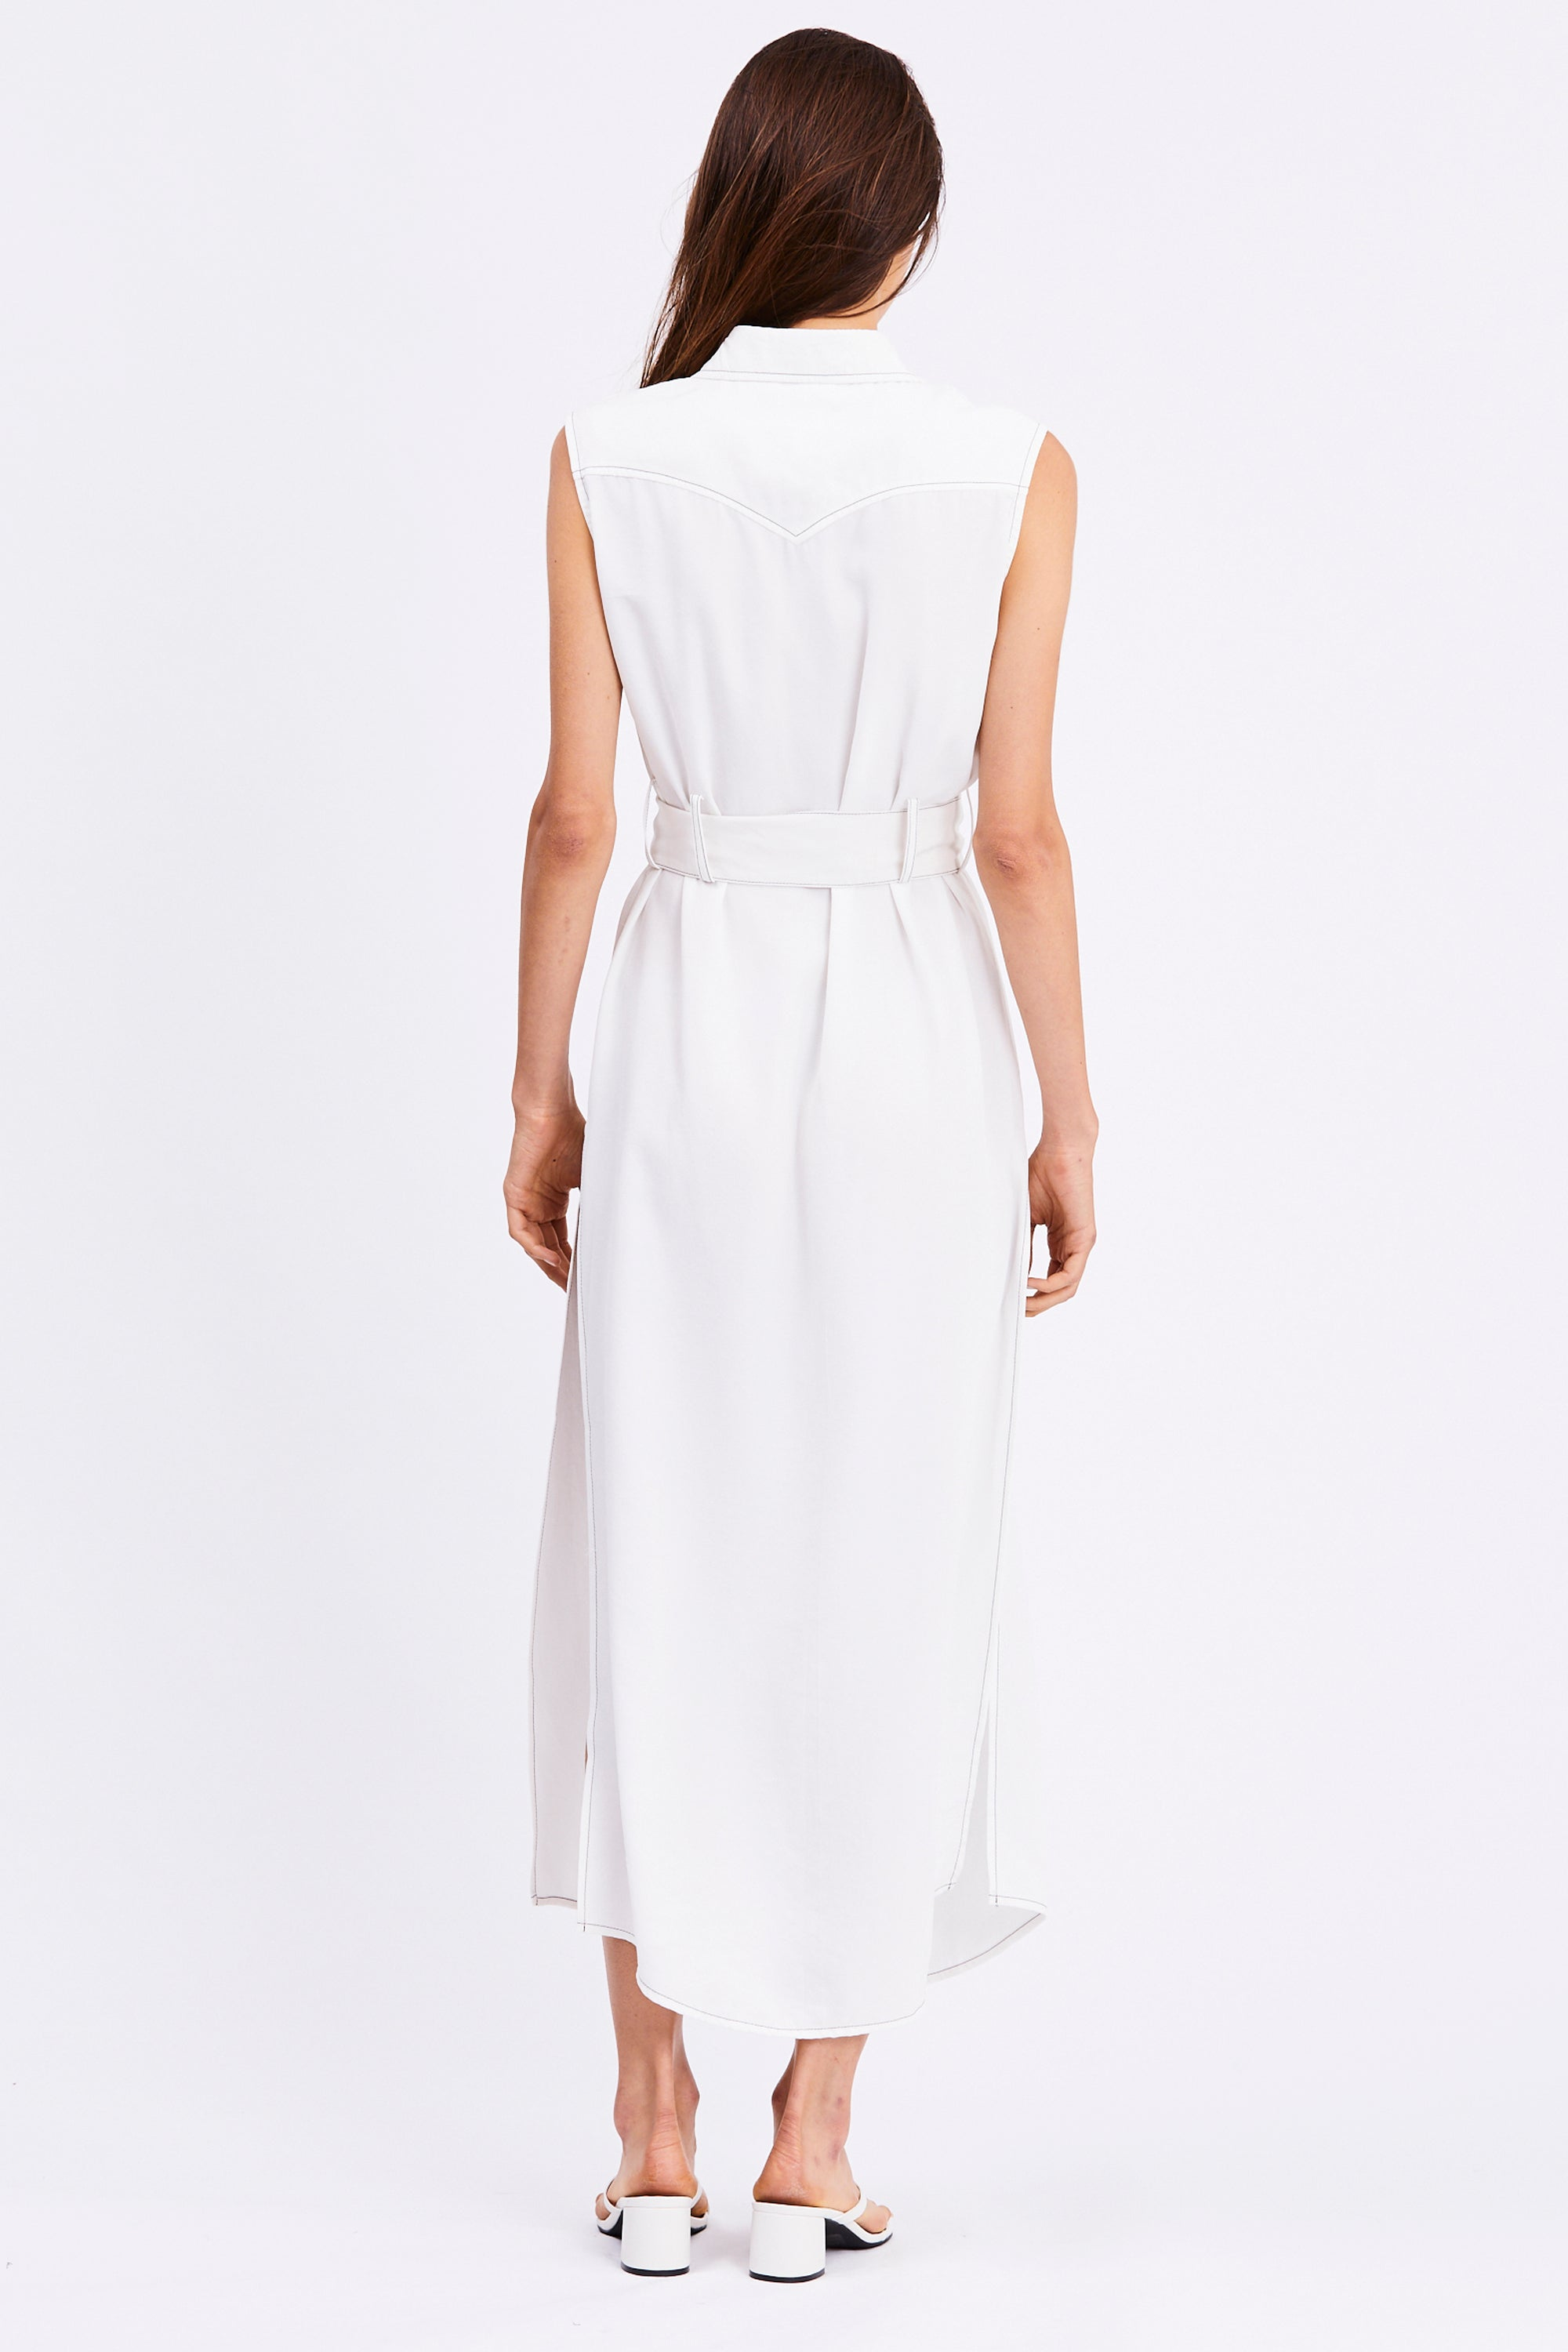 WESTERN MAXI DRESS | OFF WHITE